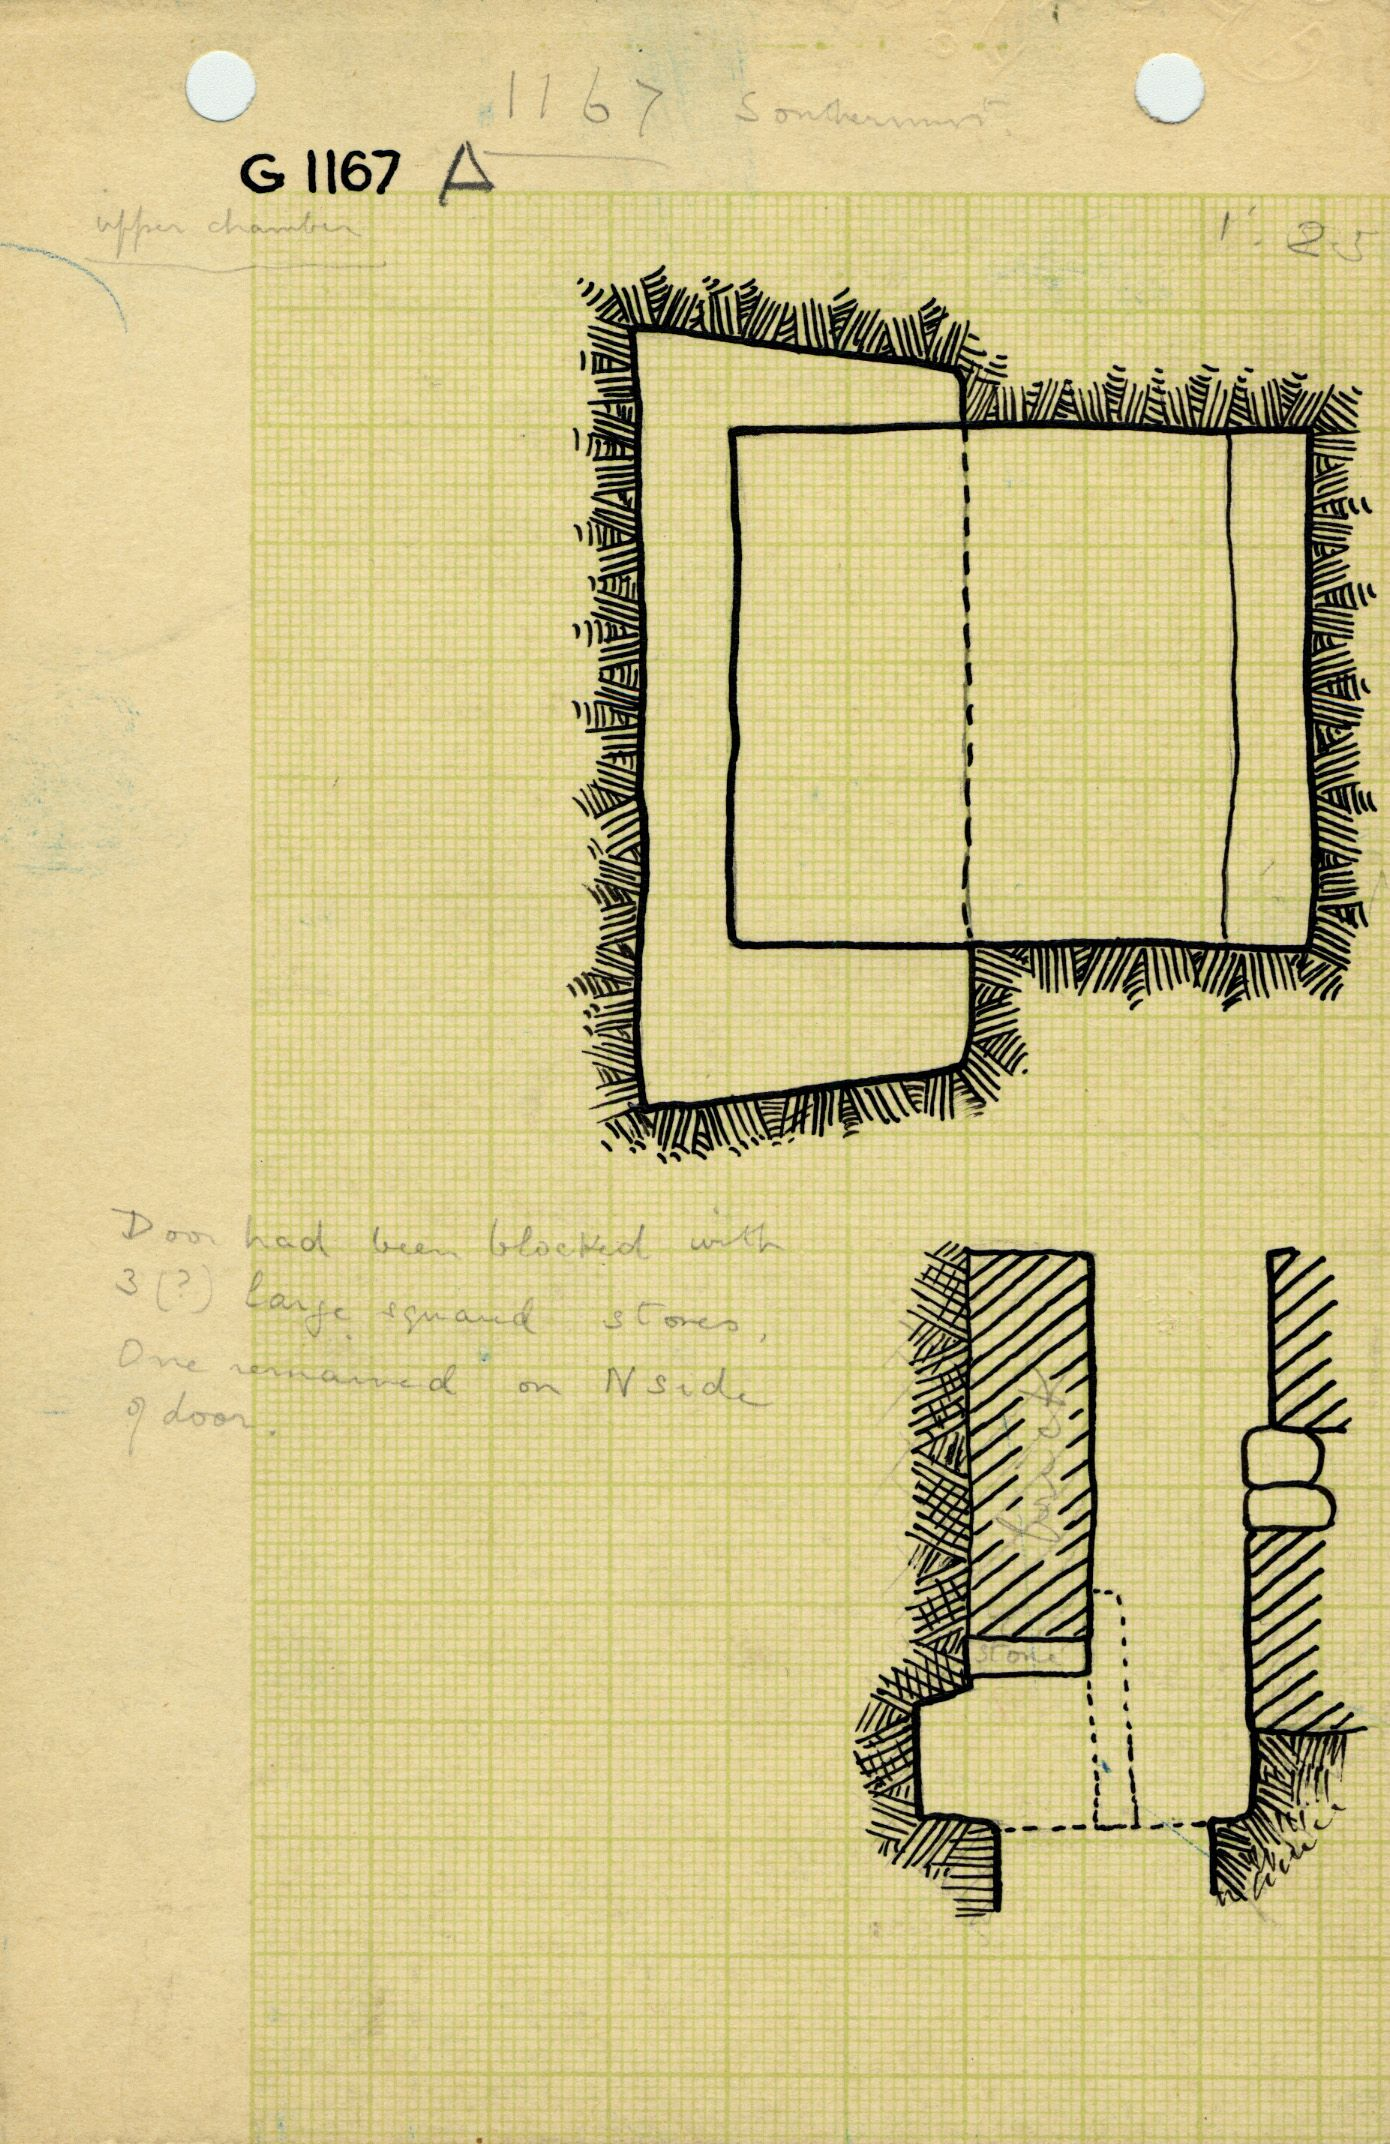 Maps and plans: G 1167, Shaft A (I)